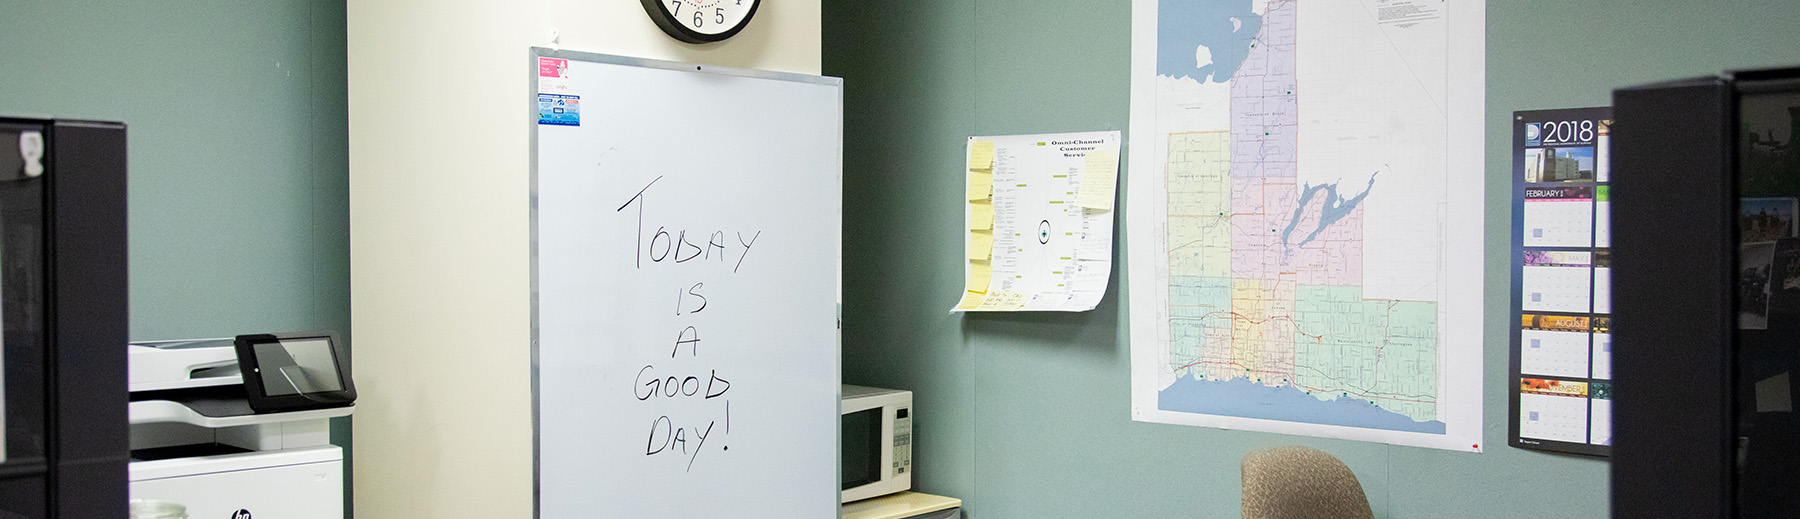 "A whiteboard in an office with ""Today is a good day!"" written on it"